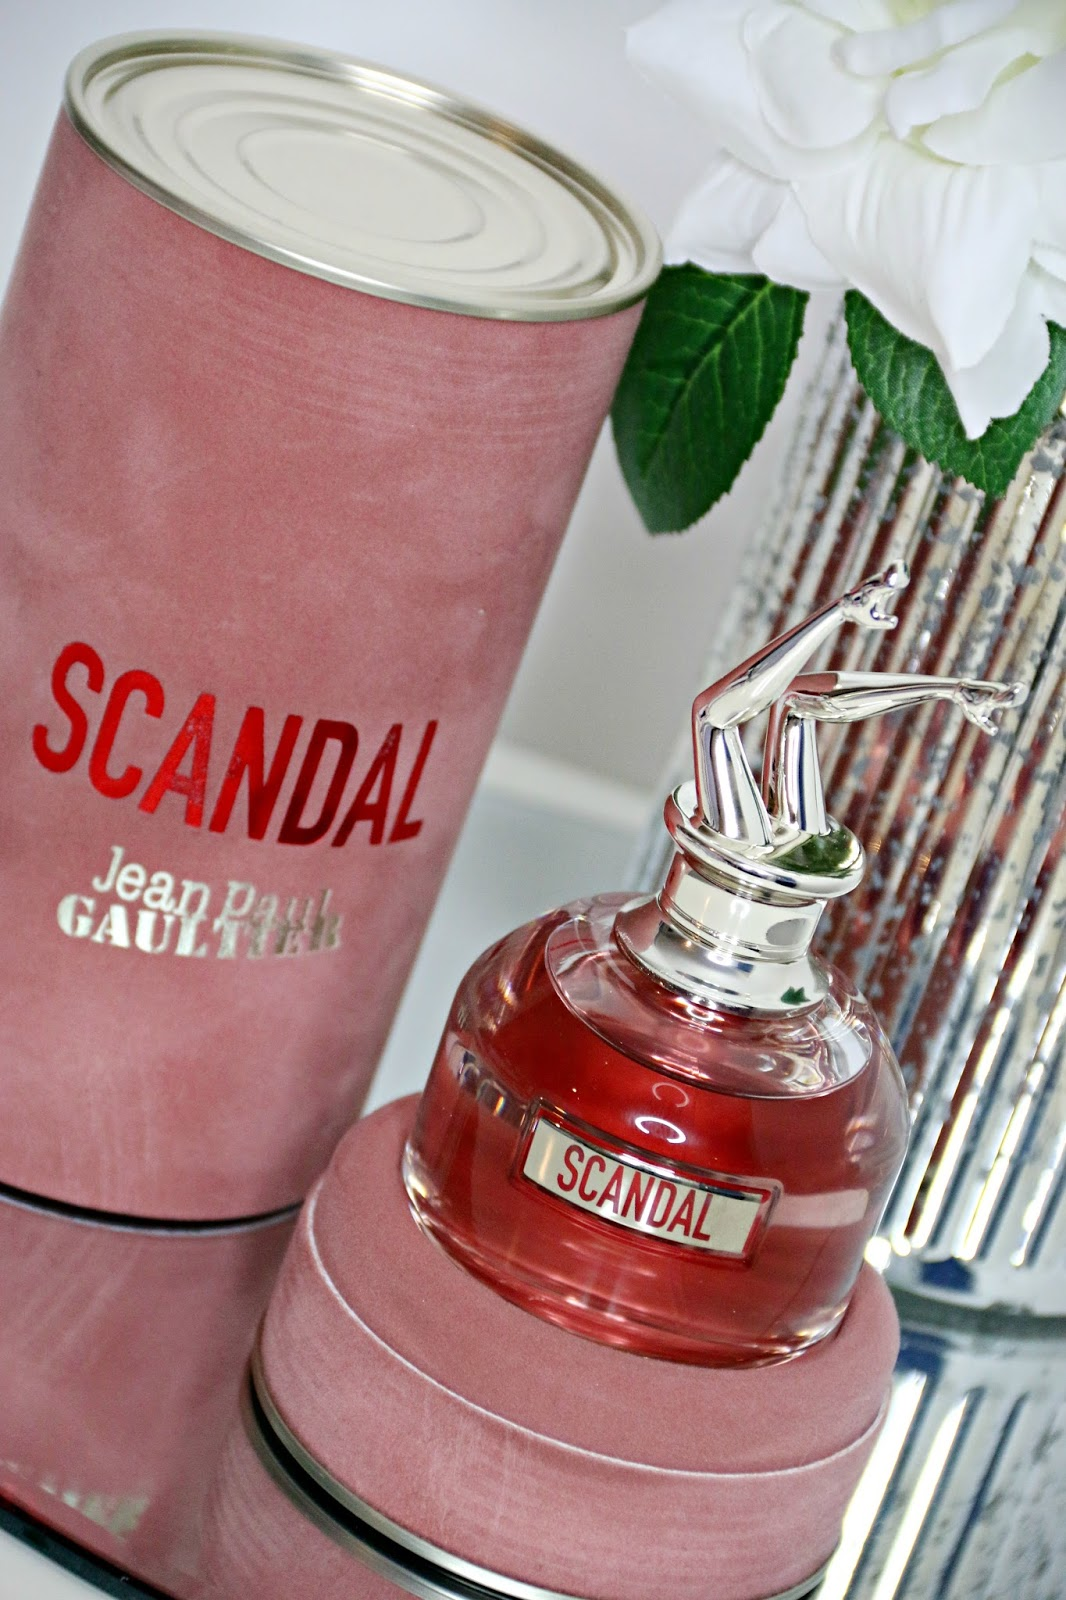 Jean Paul Gaultier Scandal Perfume Review